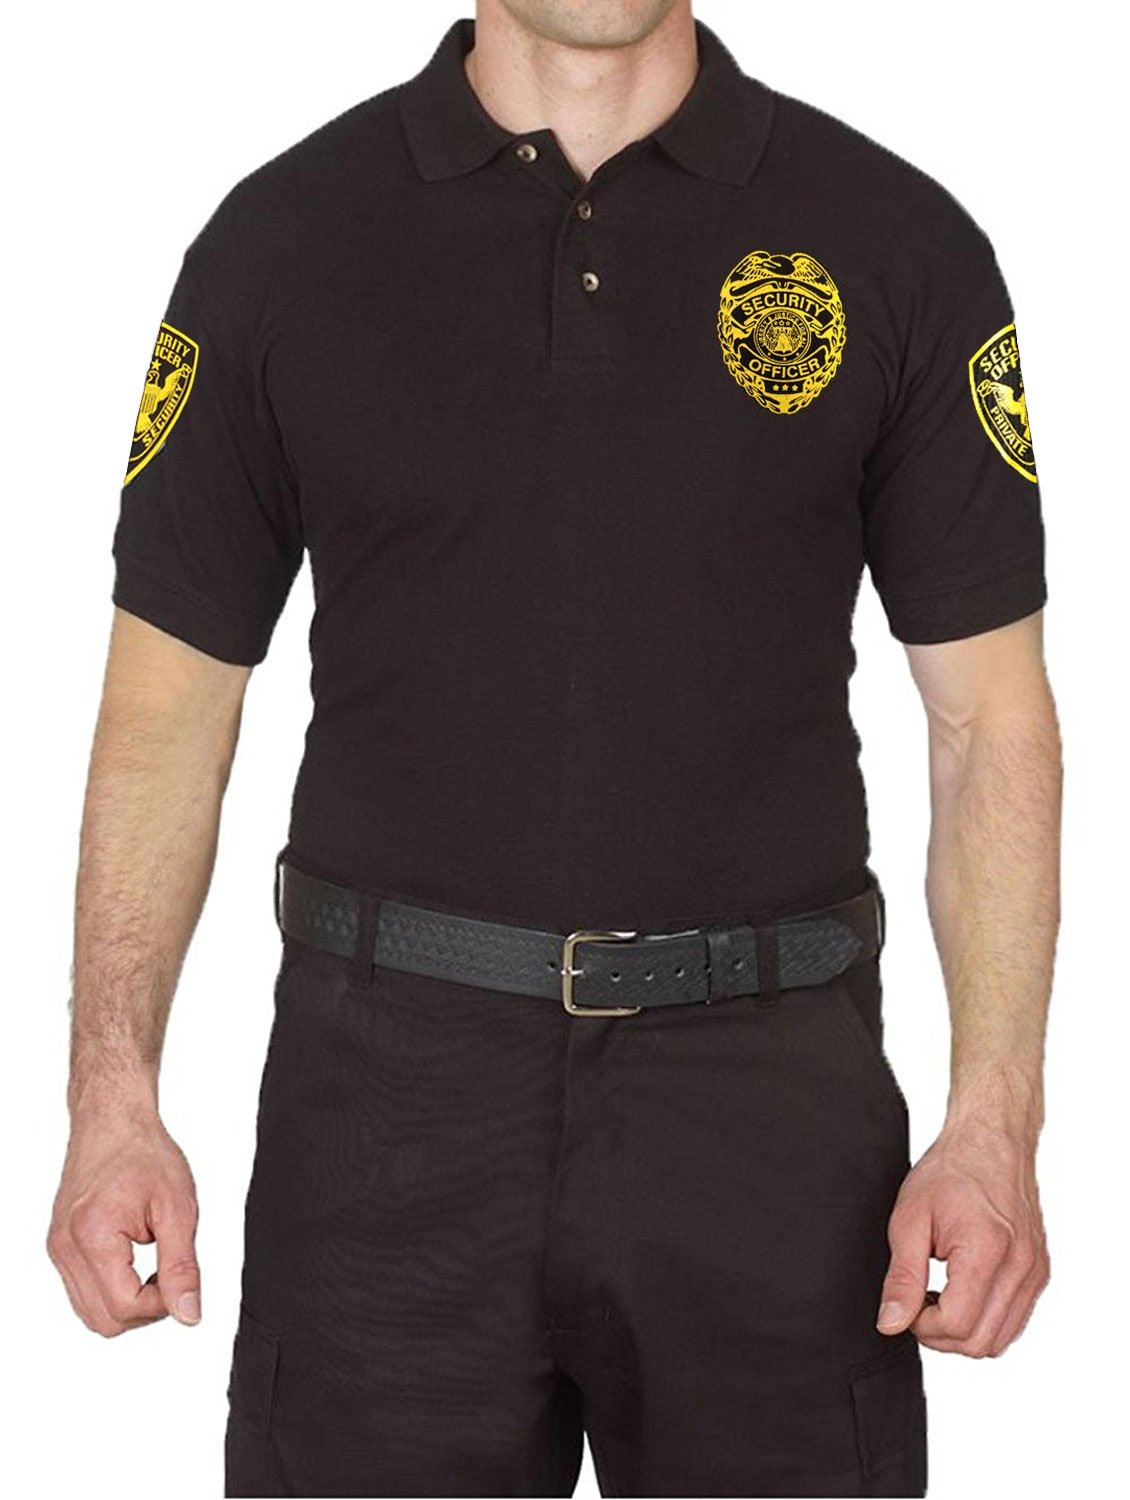 First Class 100% Cotton Security Polo Shirts Black (2XL, Short Sleeve Gold)